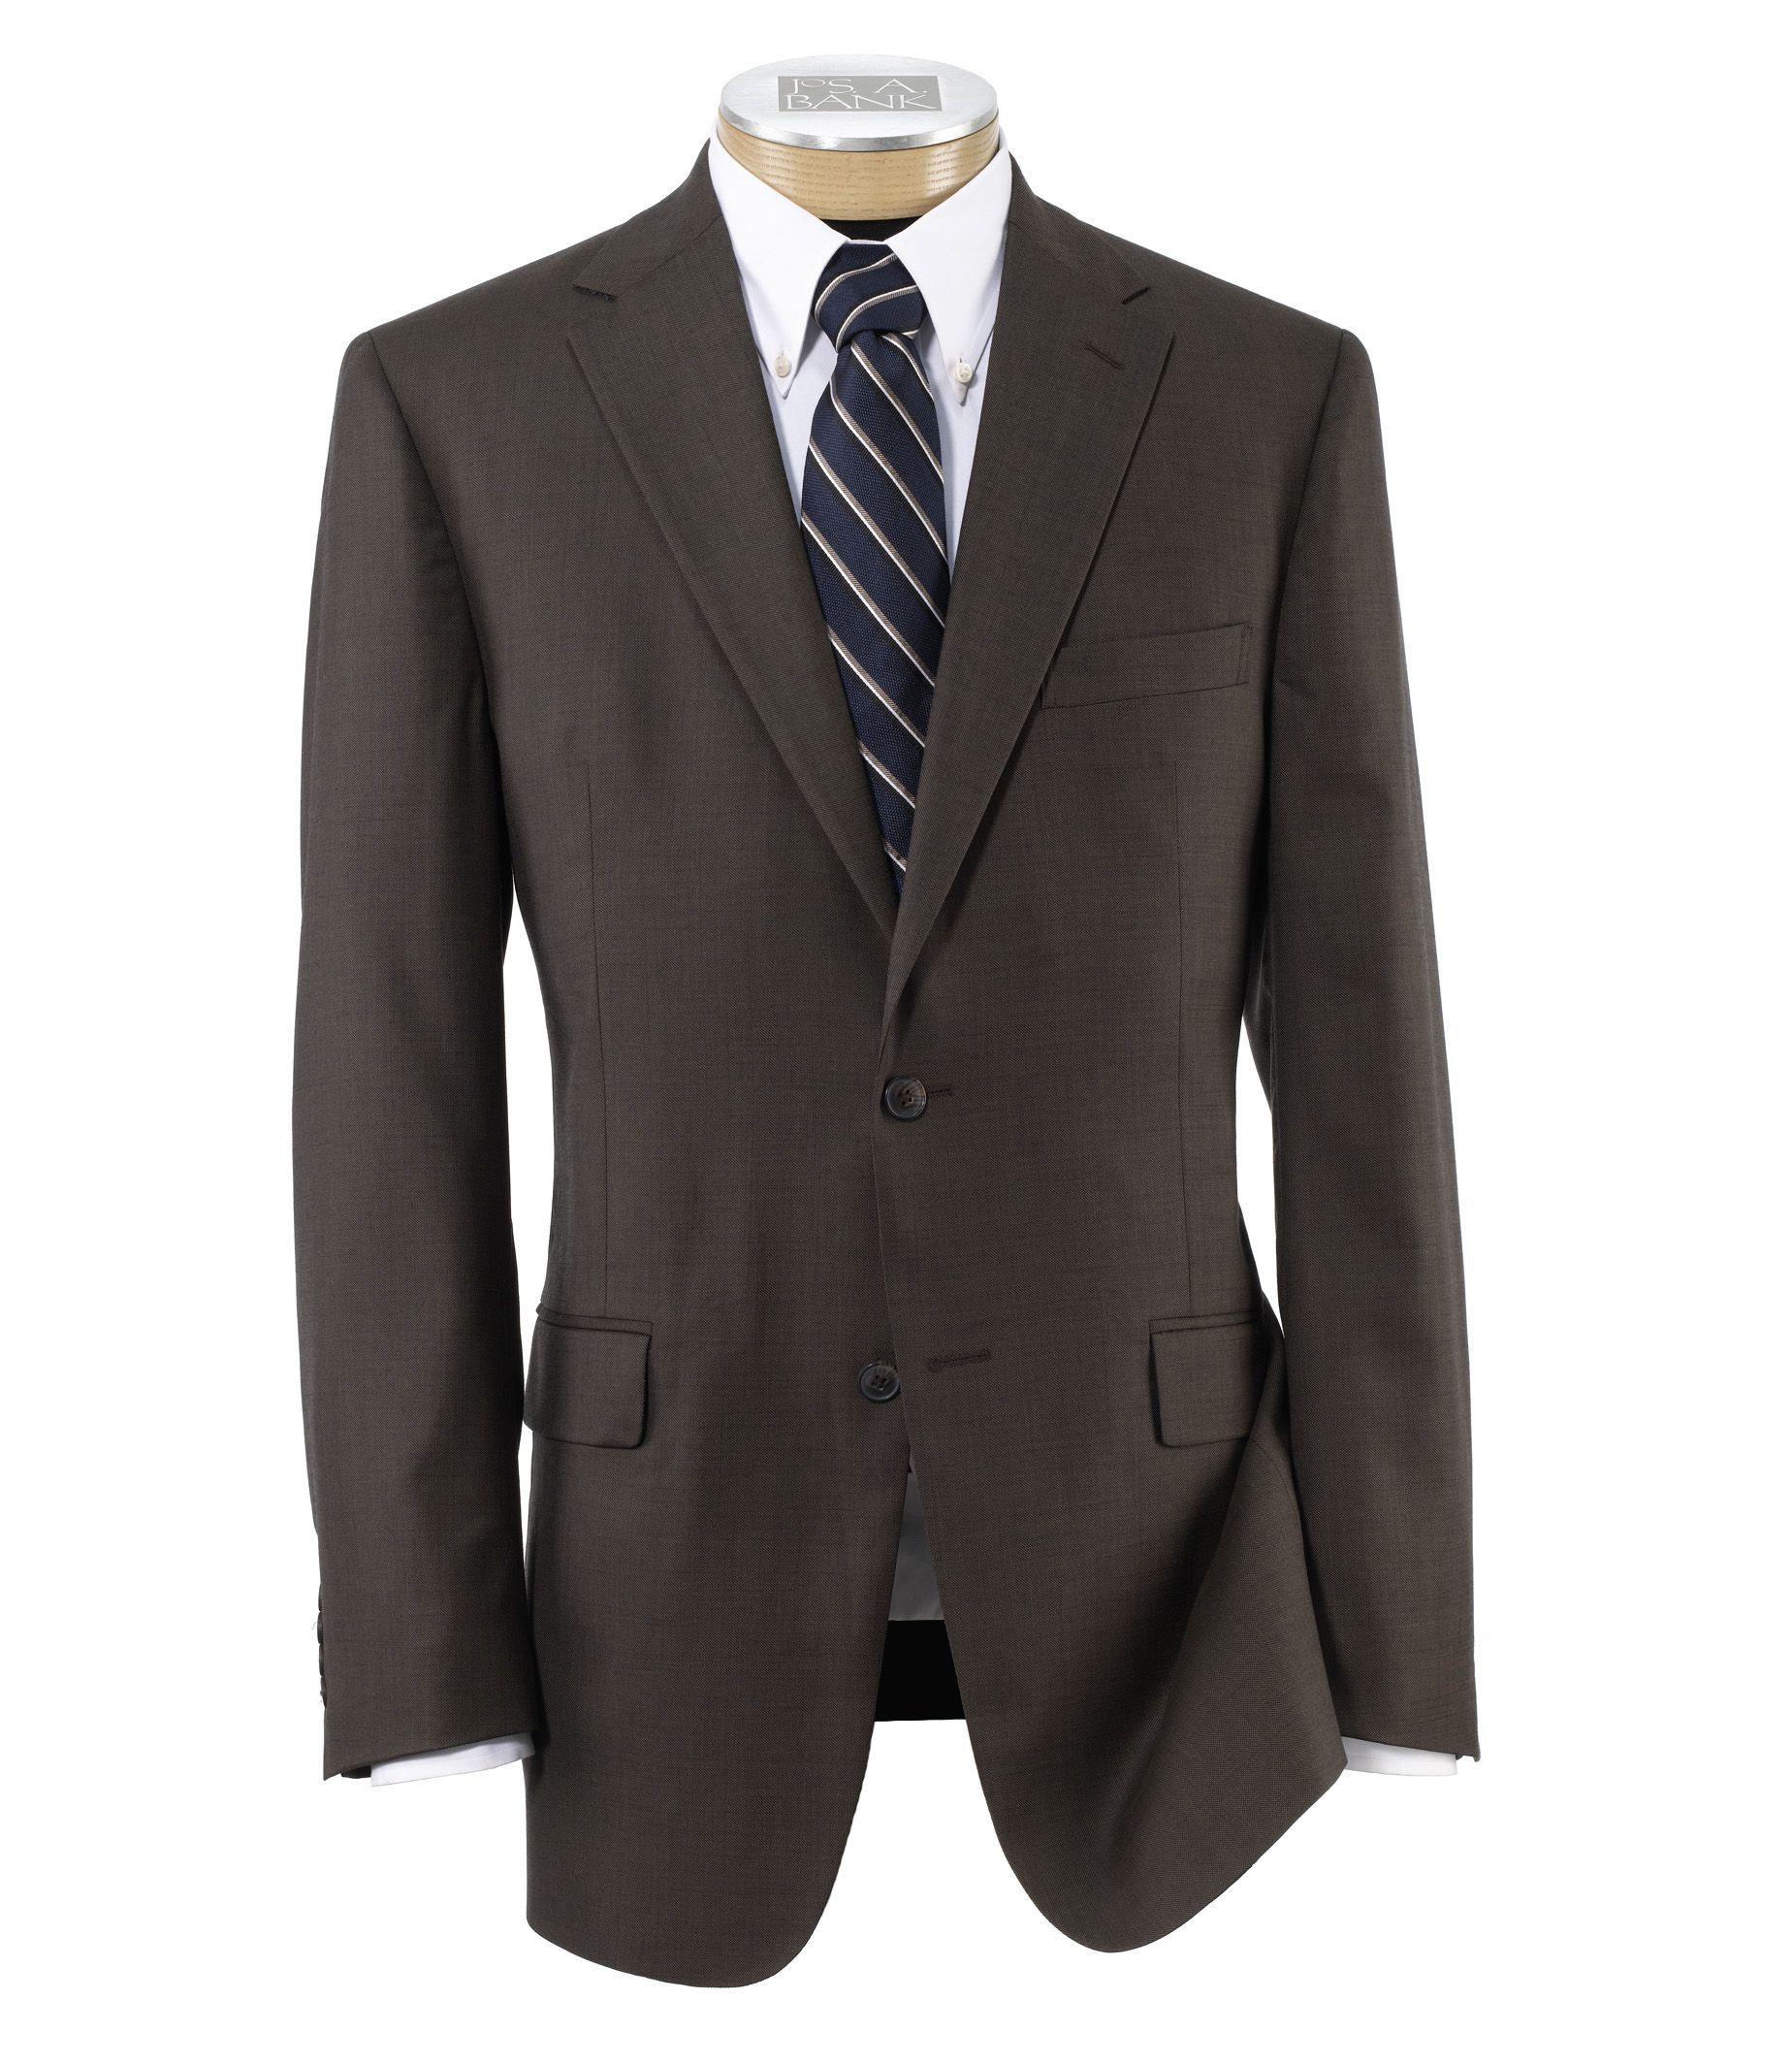 Traveler Tailored Fit 2-Button Suits Plain Front Trousers- Brown Sharkskin